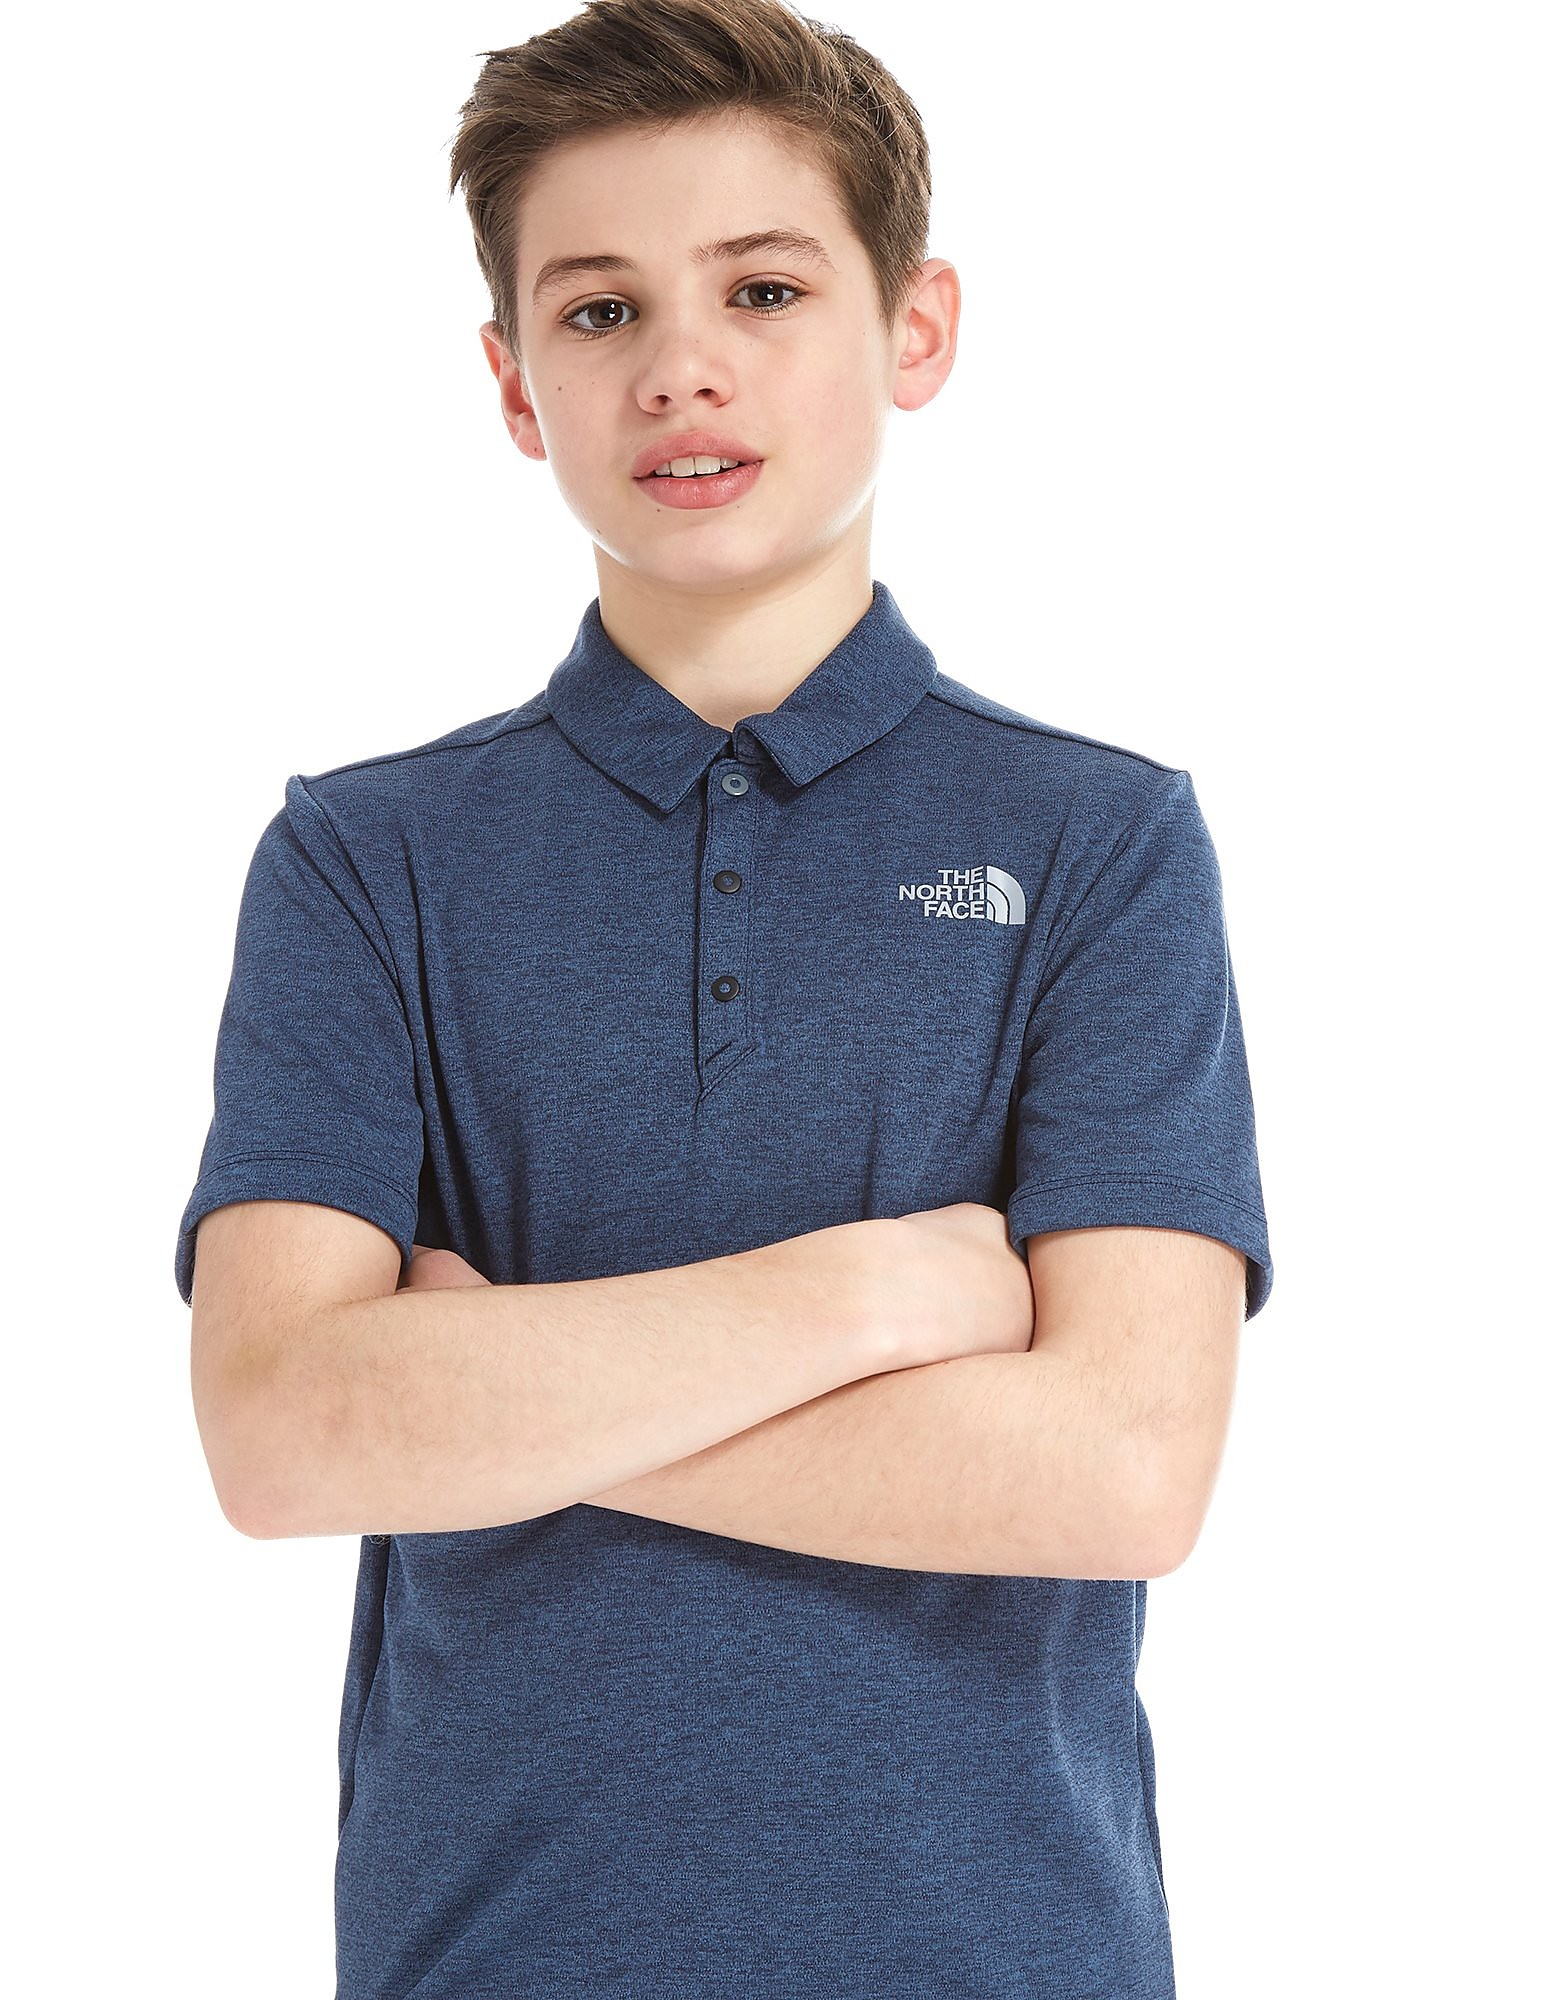 The North Face Poly Polo Shirt Junior - Blauw - Kind